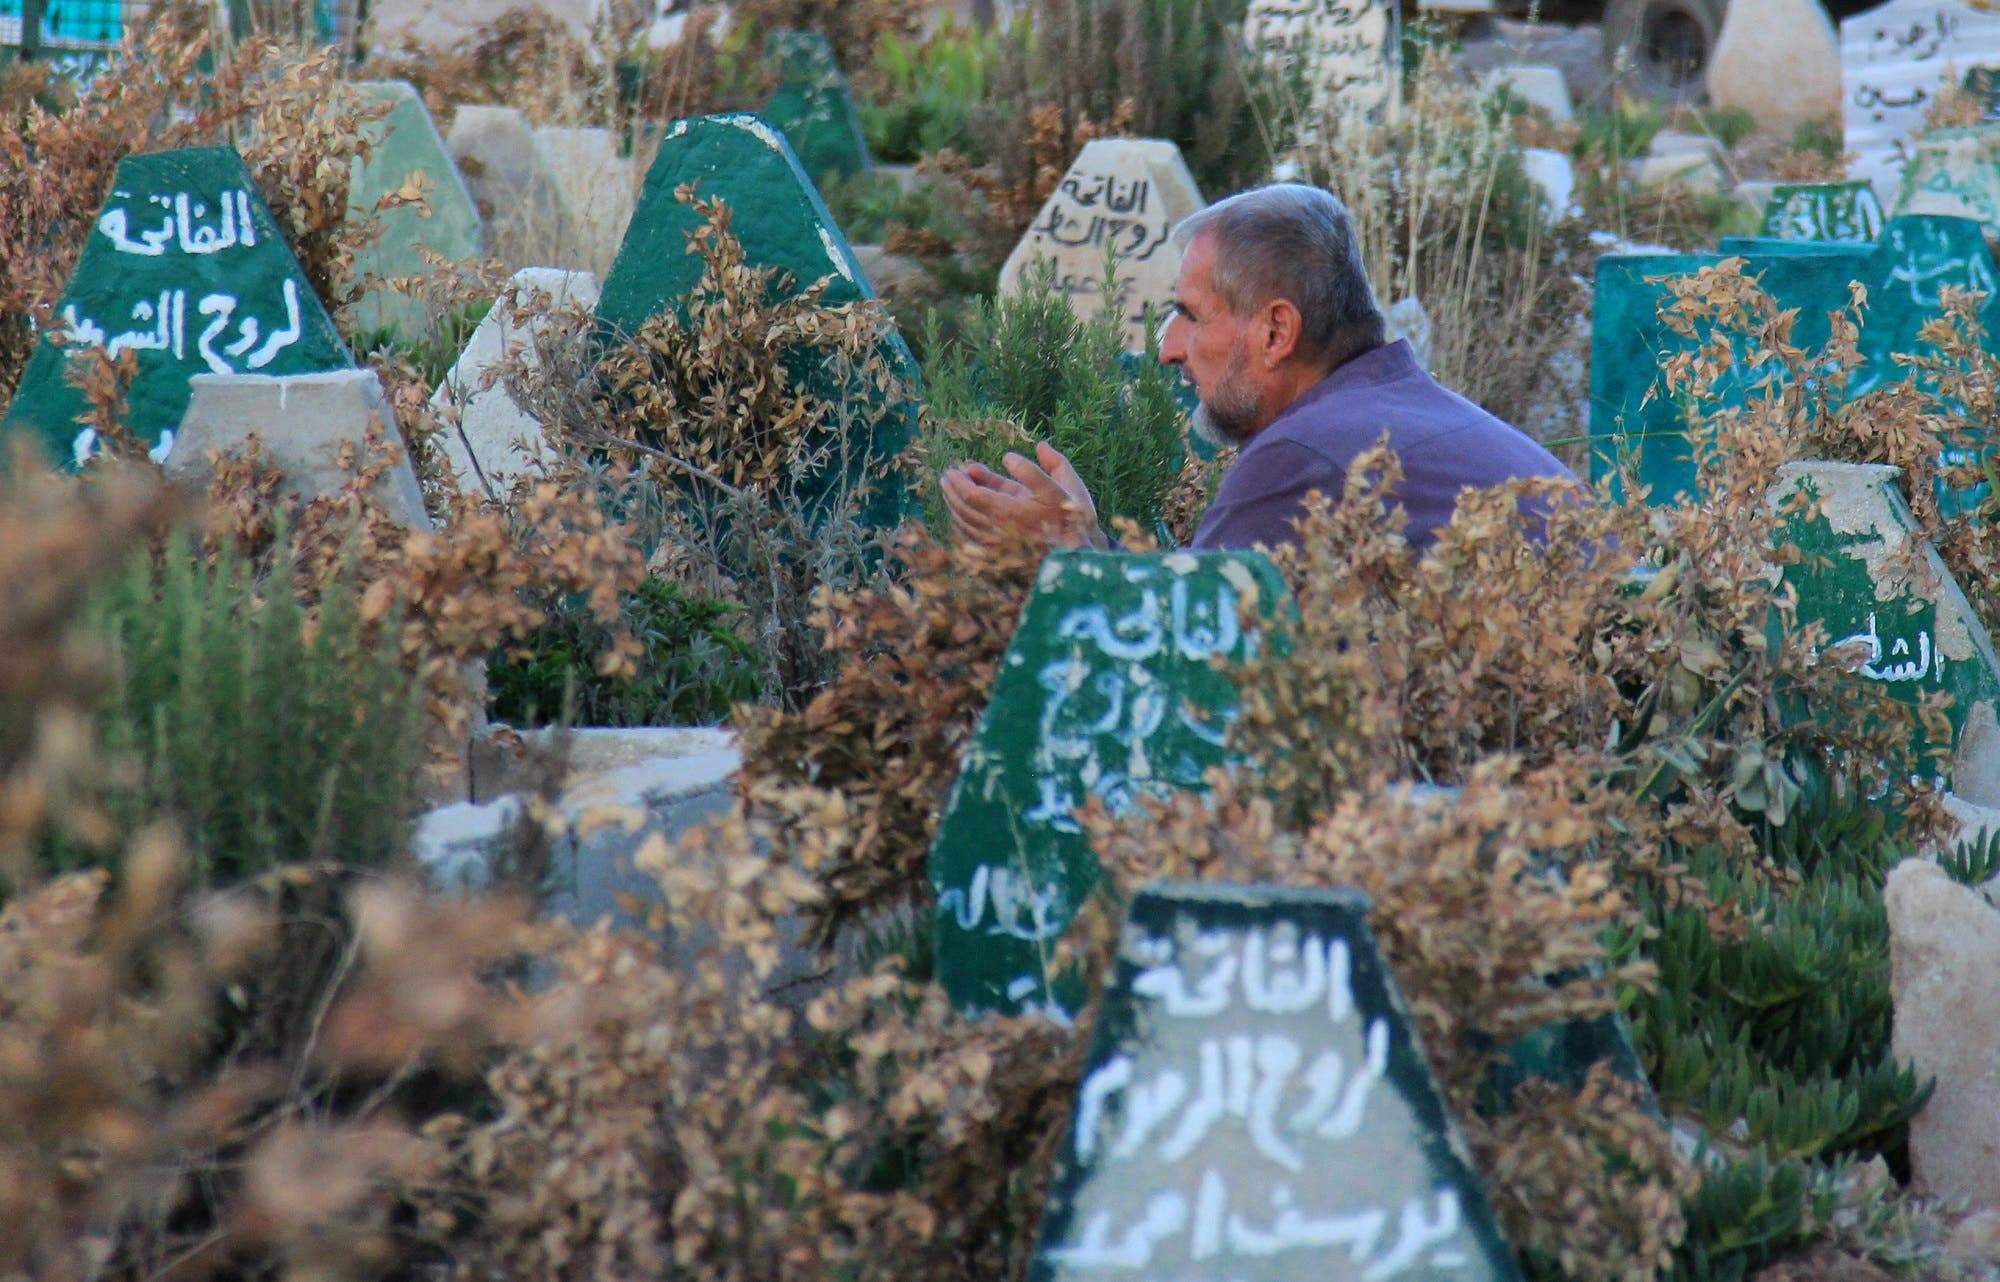 A Syrian man prays on July 12, 2017 at a cemetery in Khan Sheikhun. (AFP)